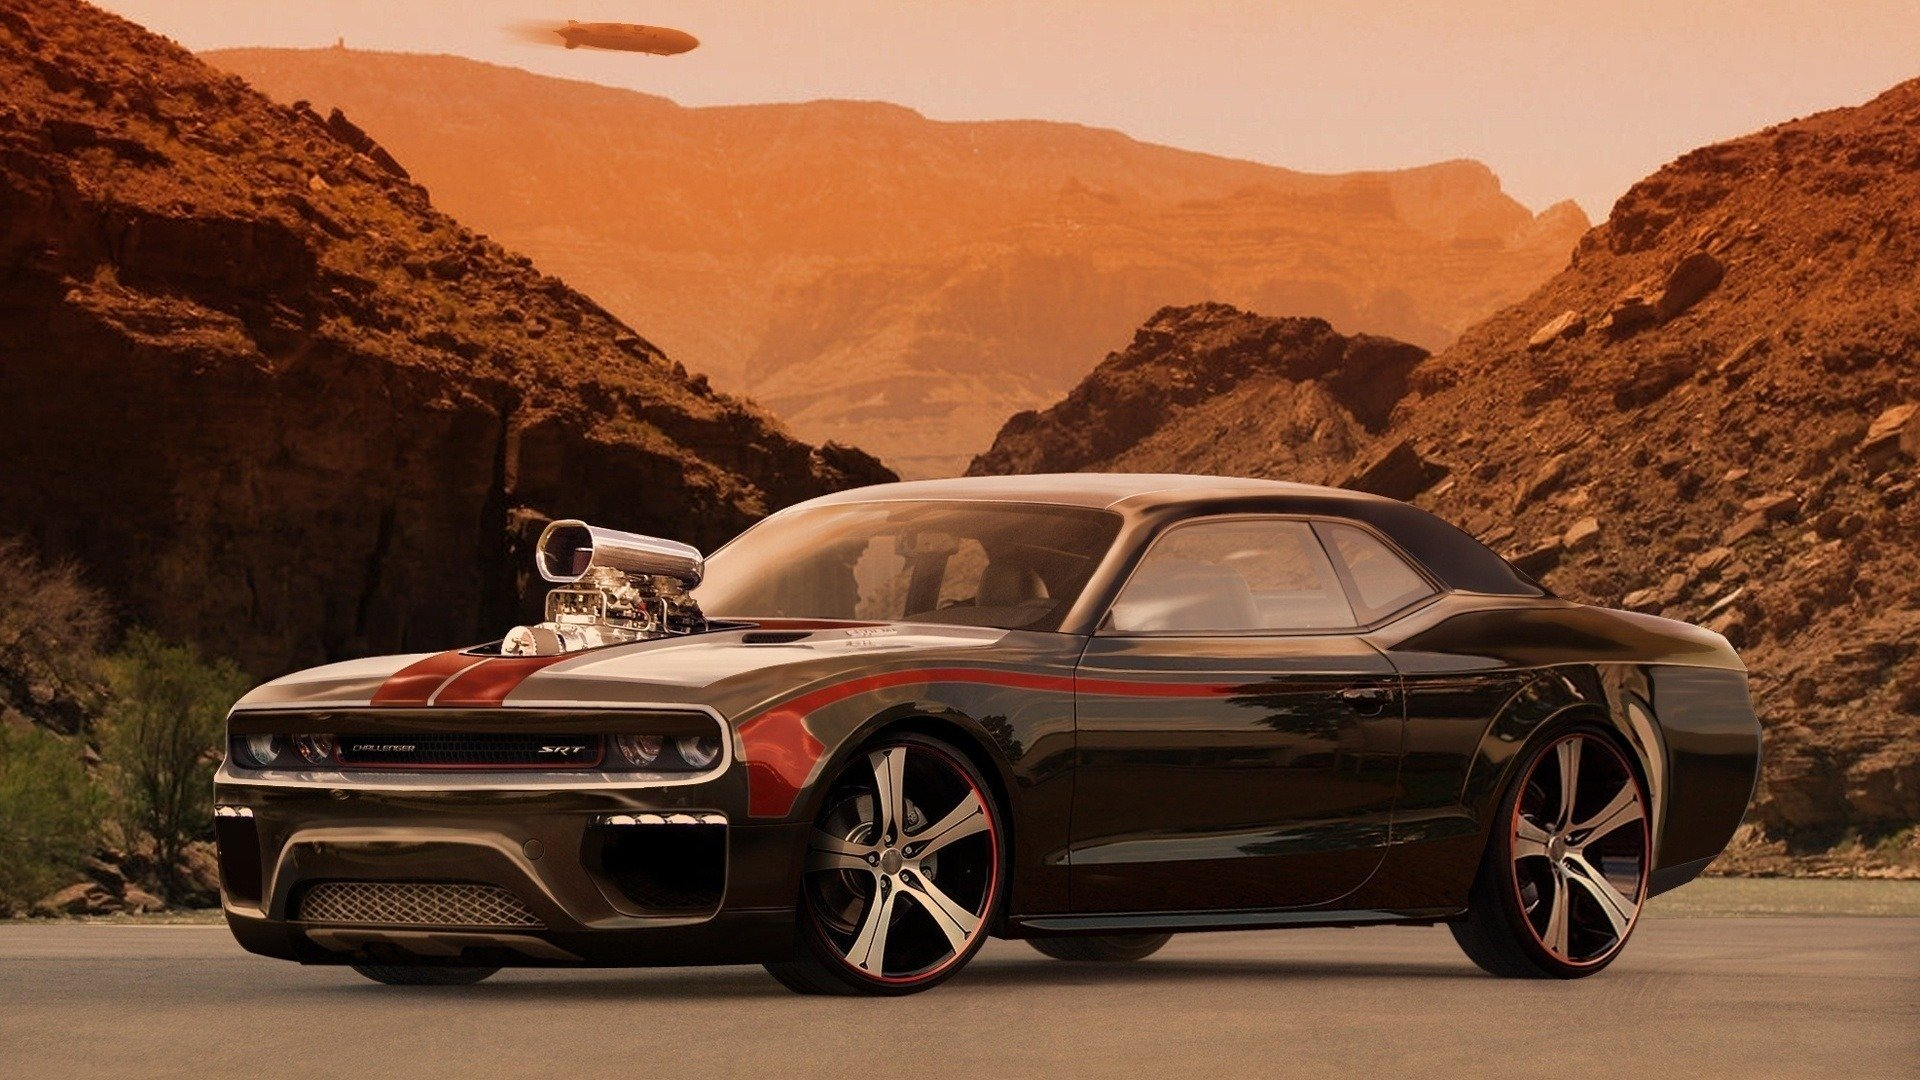 cool muscle car wallpaper 1920x1080